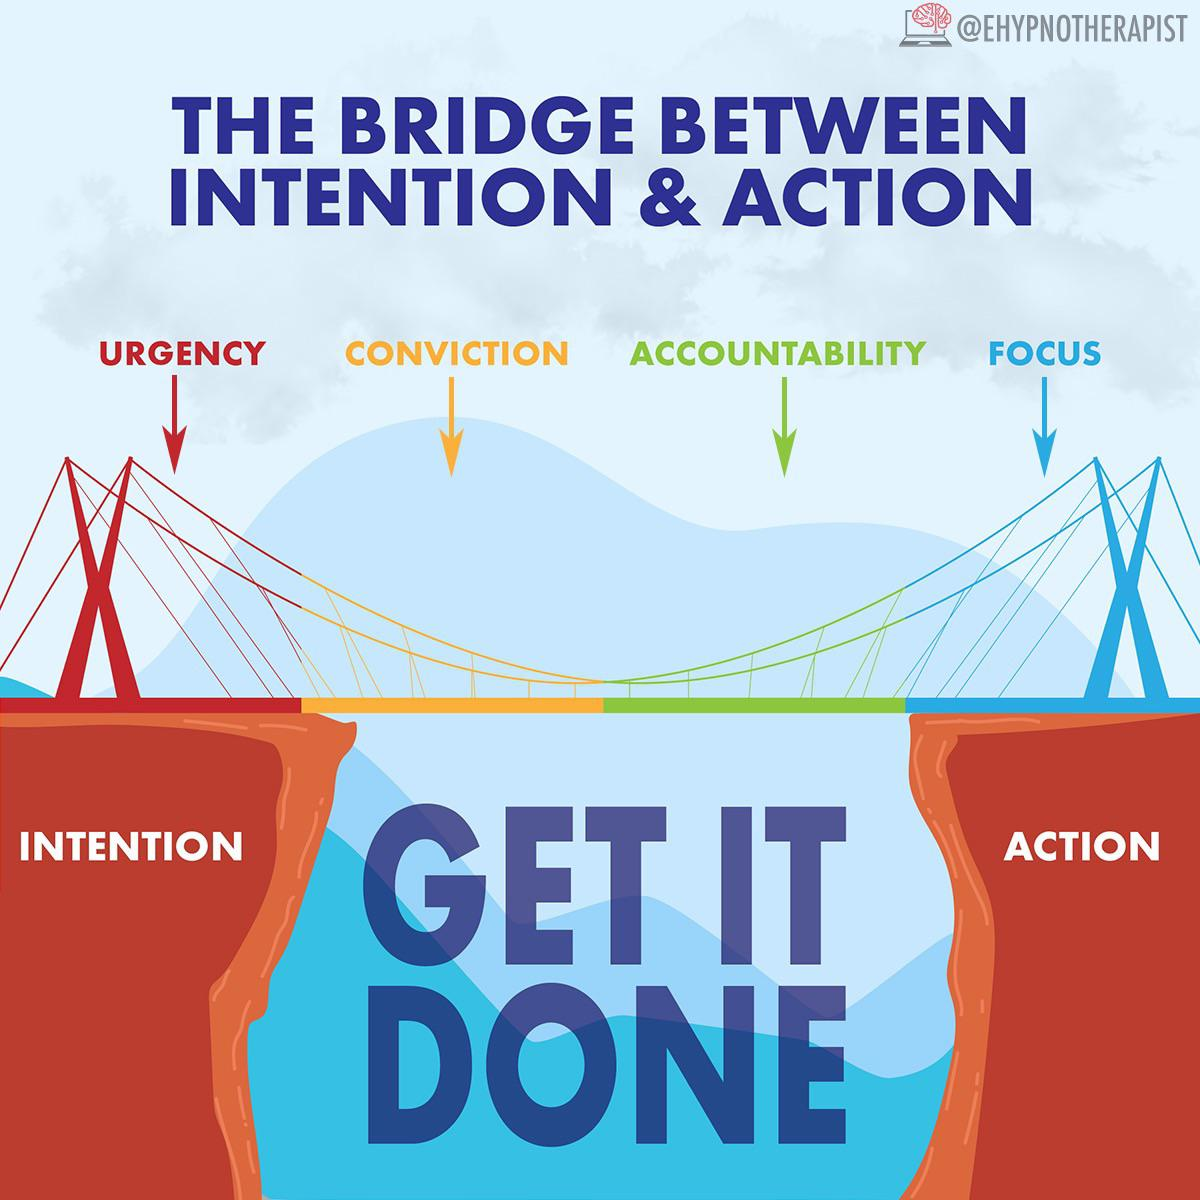 [Image] Bridging the Gap between Intention & Action